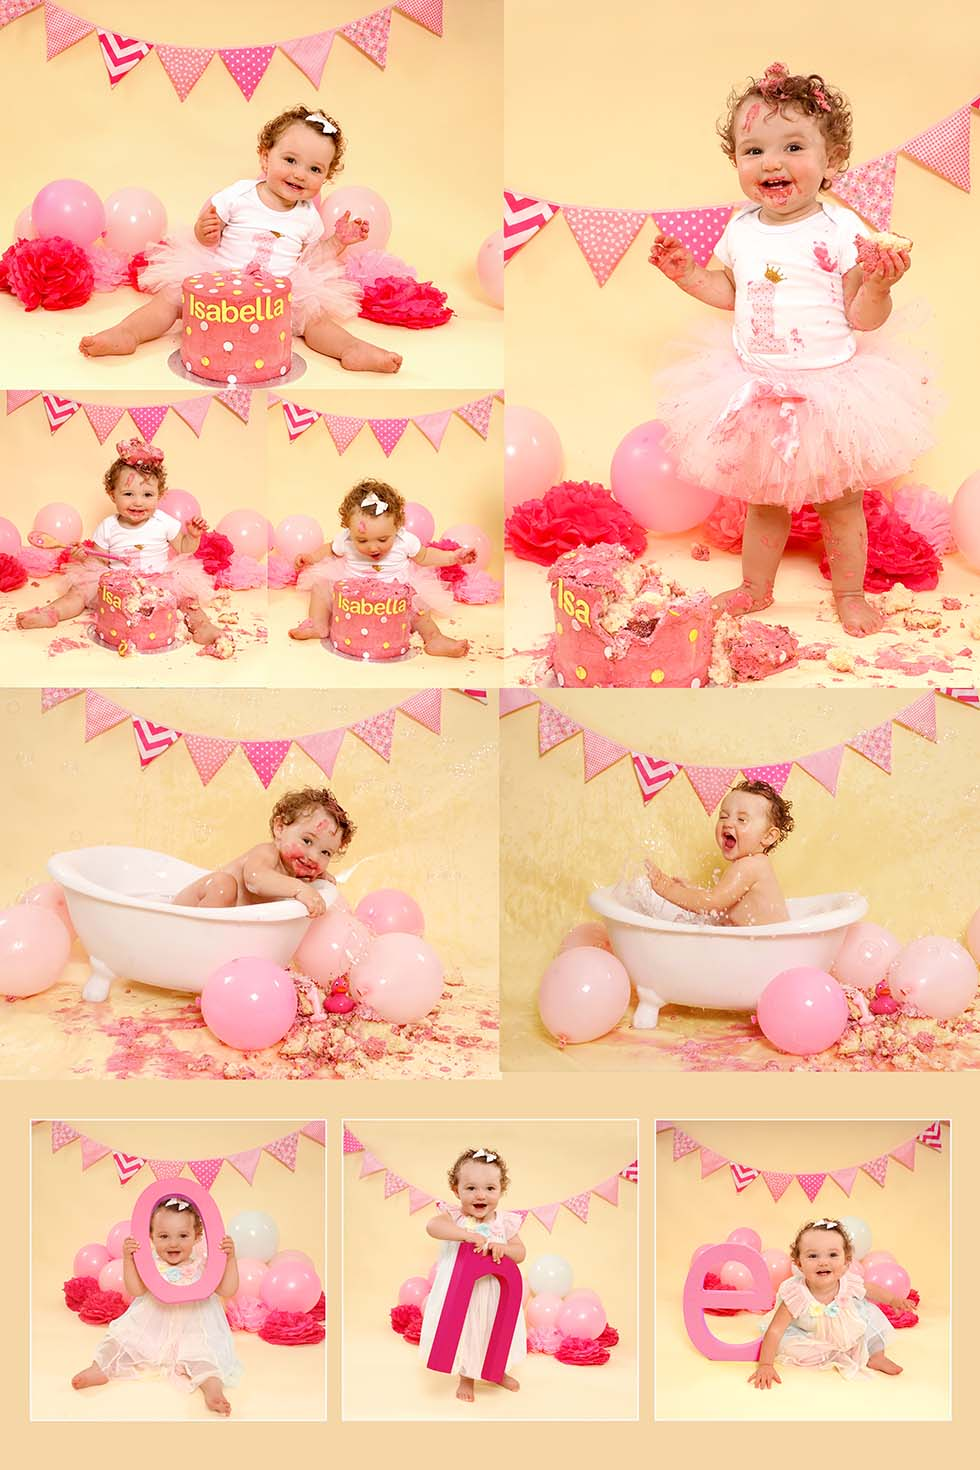 Cake smash photoshoot, cake smash photos, 1st birthday, cake smashing